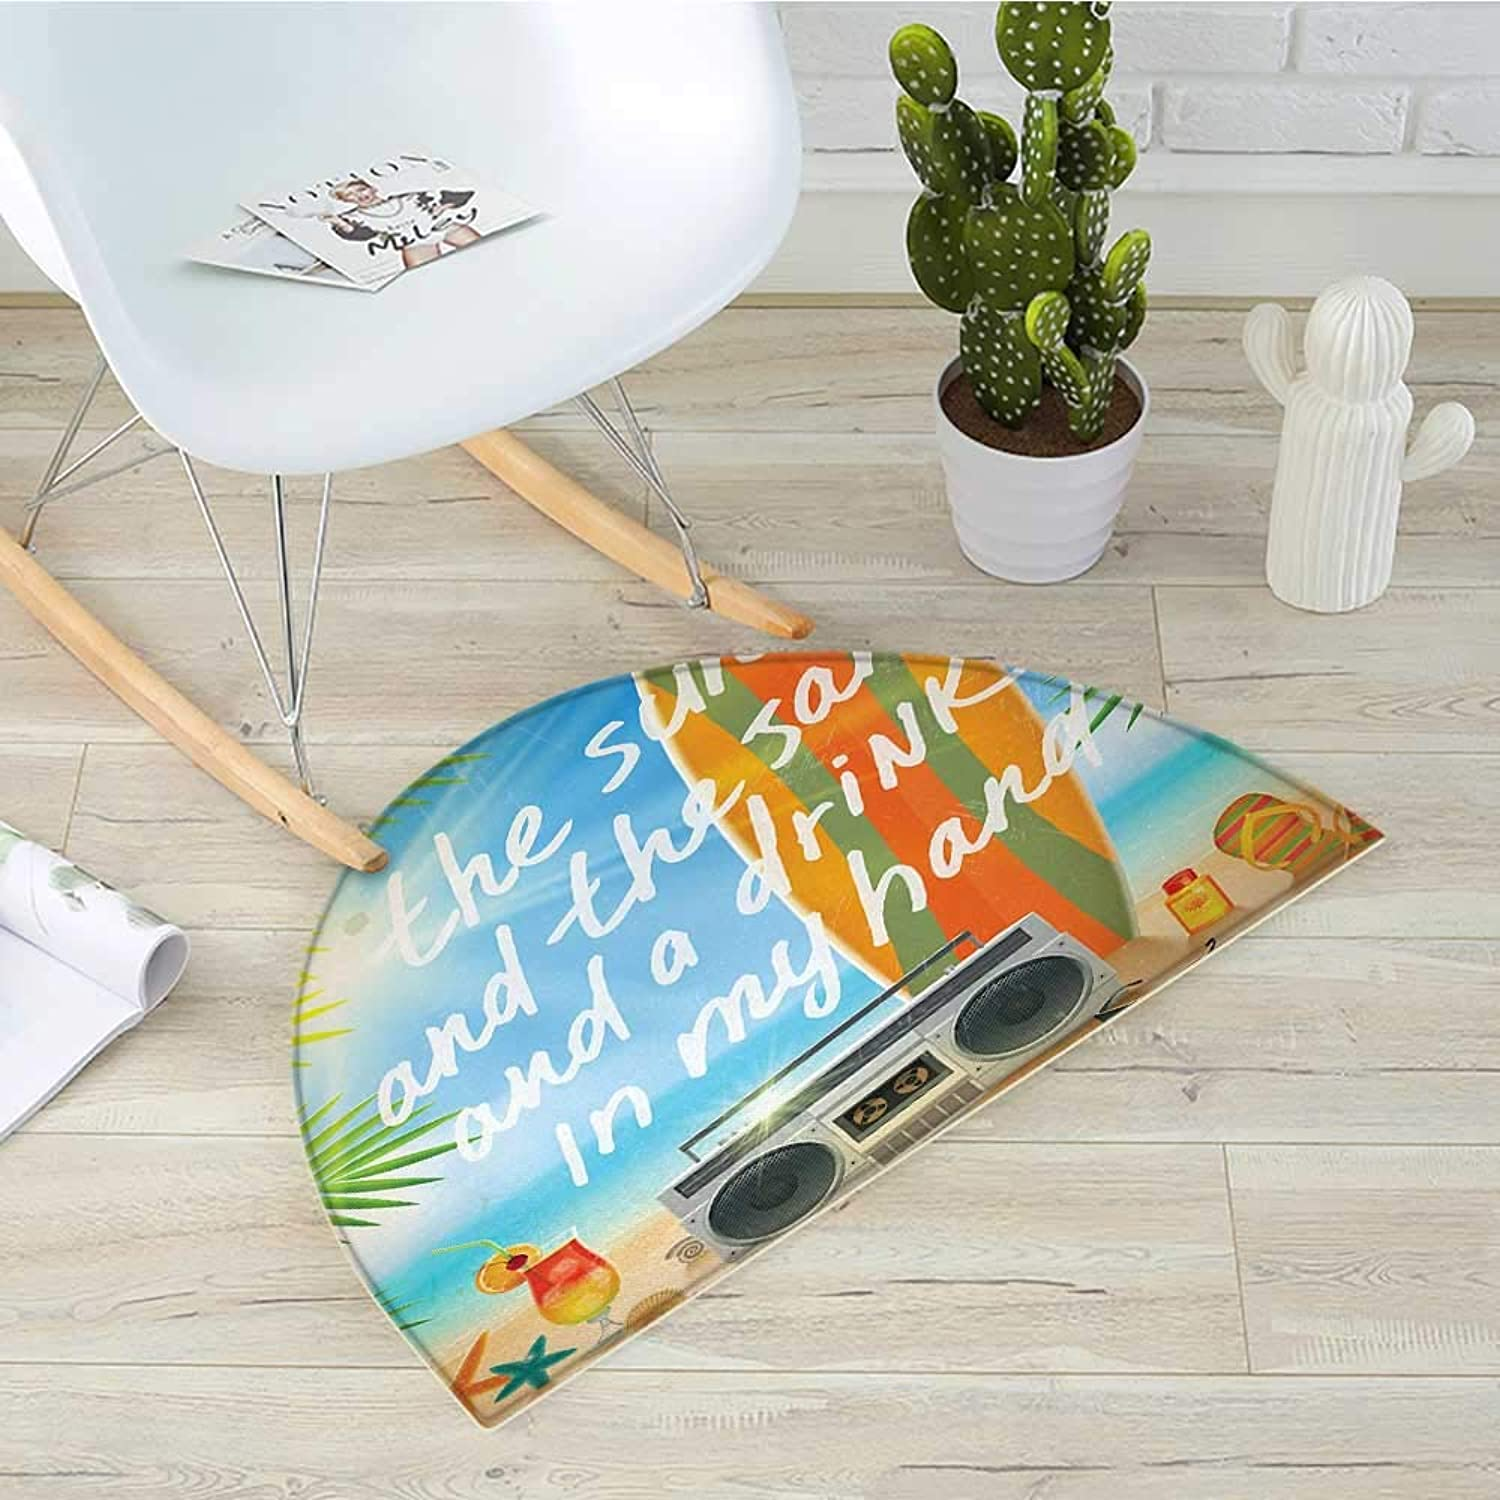 Quote Semicircle Doormat Retro Design Tropical Beach with Surfboard Palm Leaves Flip Flops and Sunglasses Halfmoon doormats H 39.3  xD 59  Multicolor